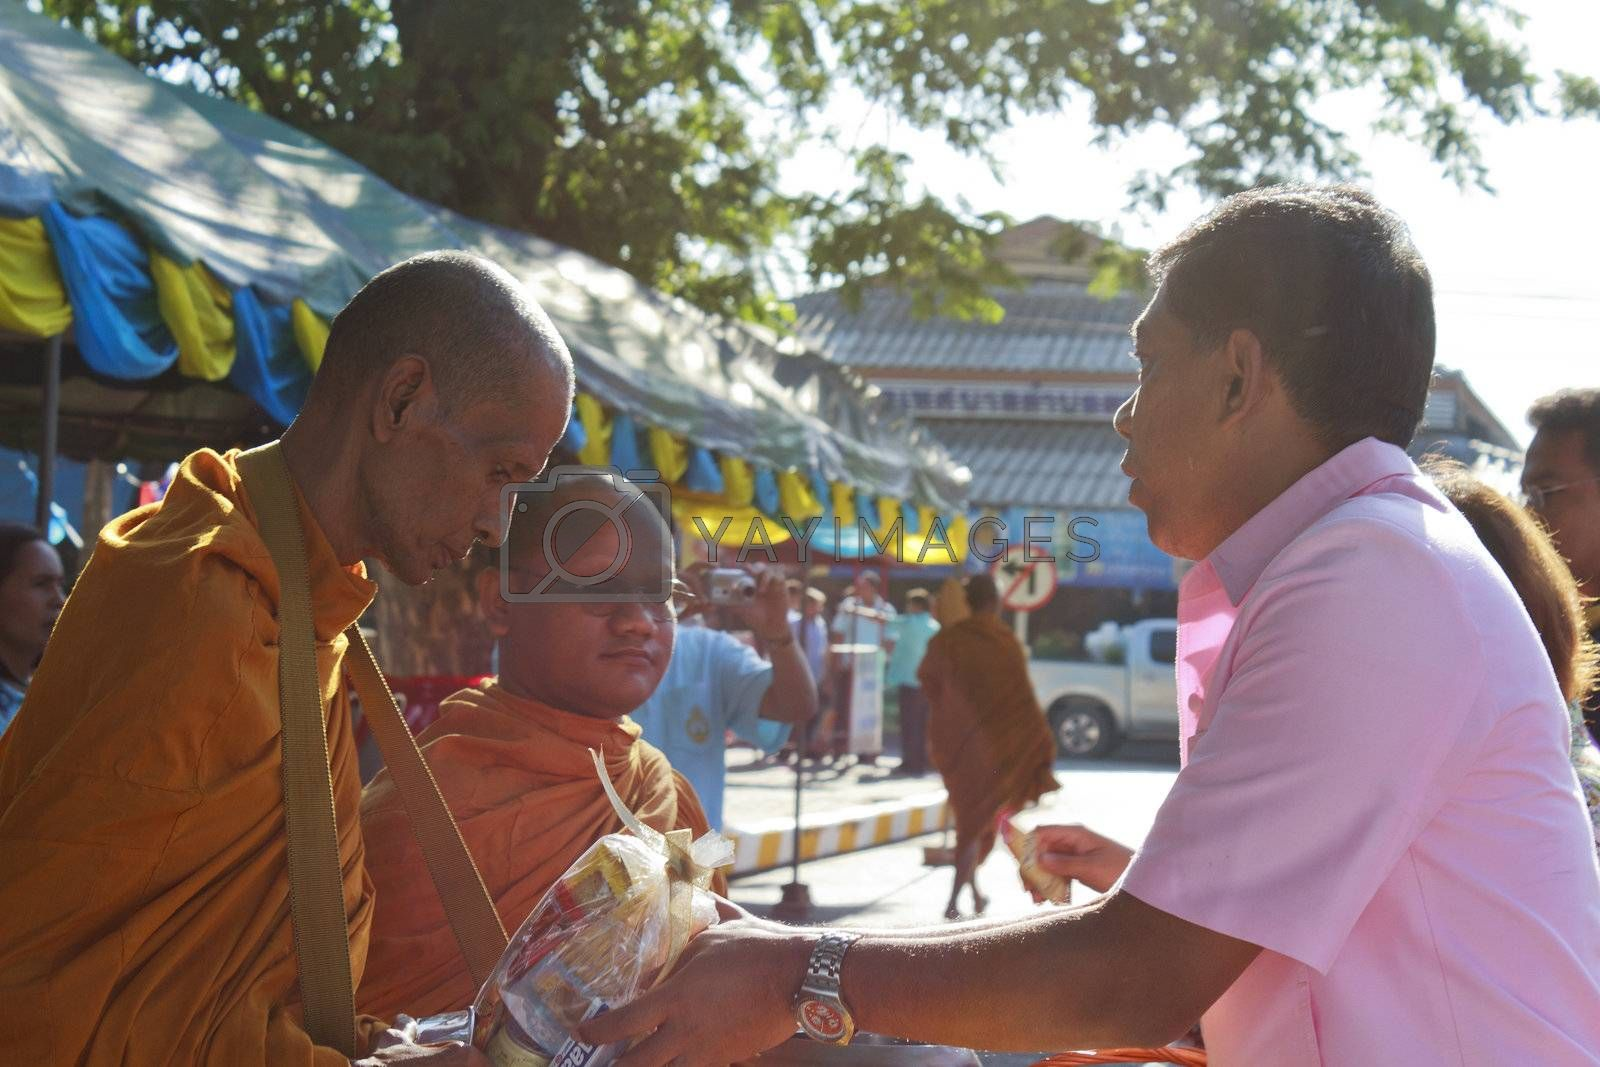 SURAT THANI, THAILAND - AUGUST 12, 2012 : Mr.Suriyan Jirasatsuntorn Chiya sheriff give food offerings to Buddhist monks during celebrated Mother's day as the birthday of Her Majesty Queen Sirikit at Chiya on August 12, 2012 in Surat Thani, Thailand.